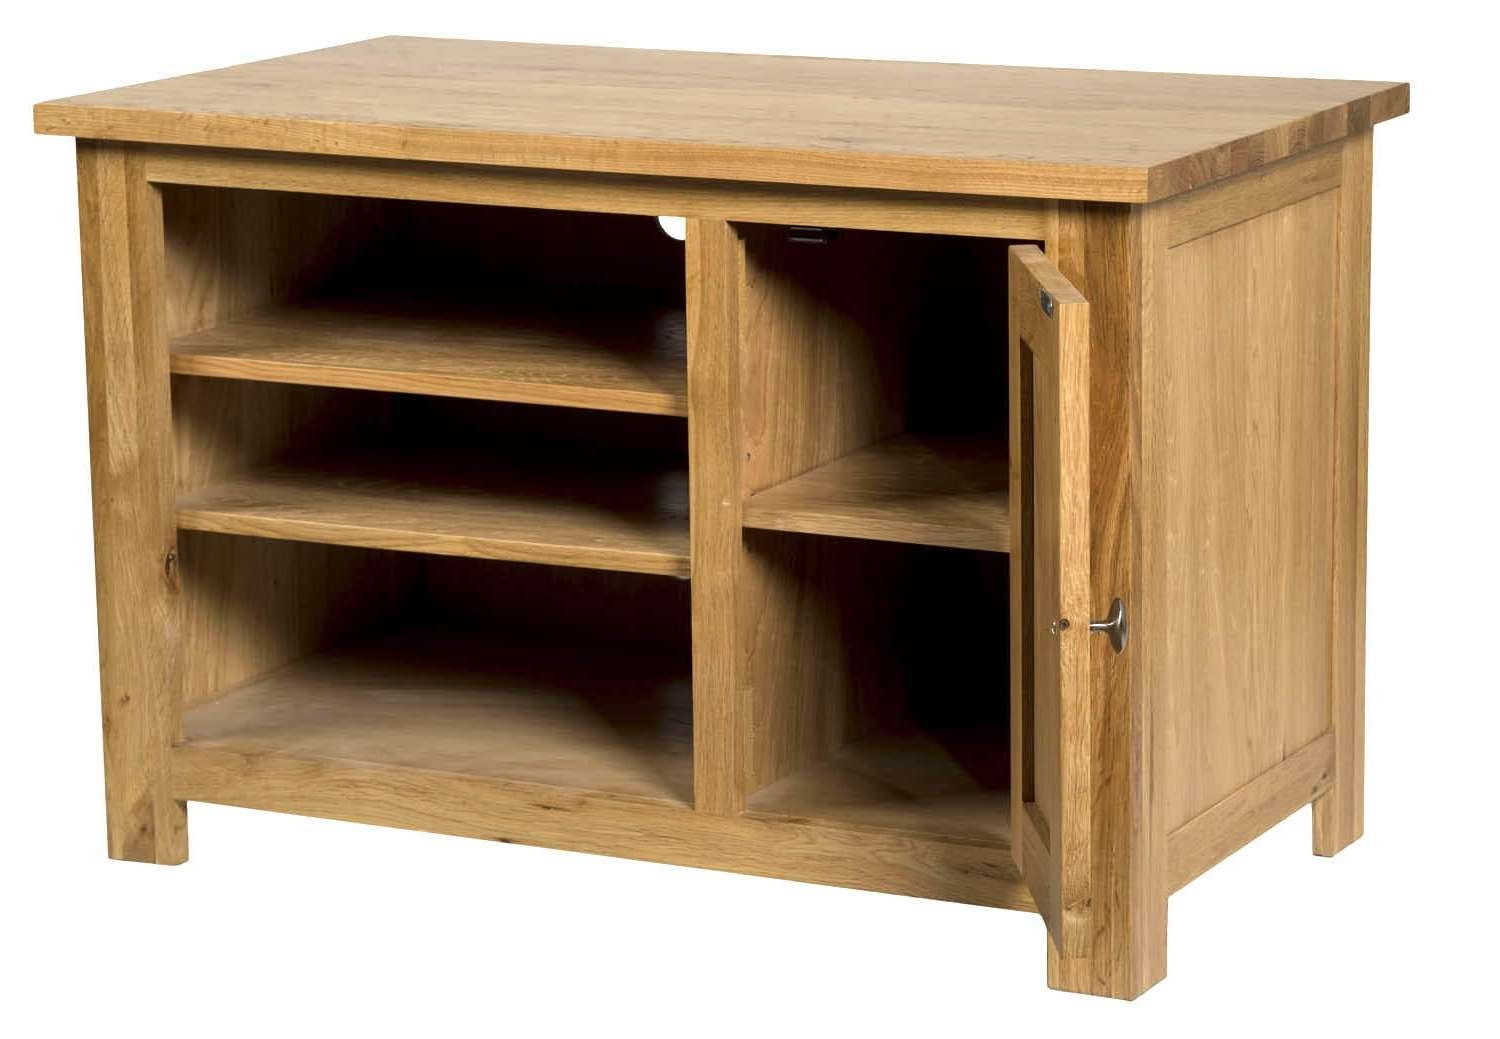 Waverly Oak Small Compact Tv Stand With Cabinet Storage | Hallowood Throughout Small Tv Cabinets (View 19 of 20)